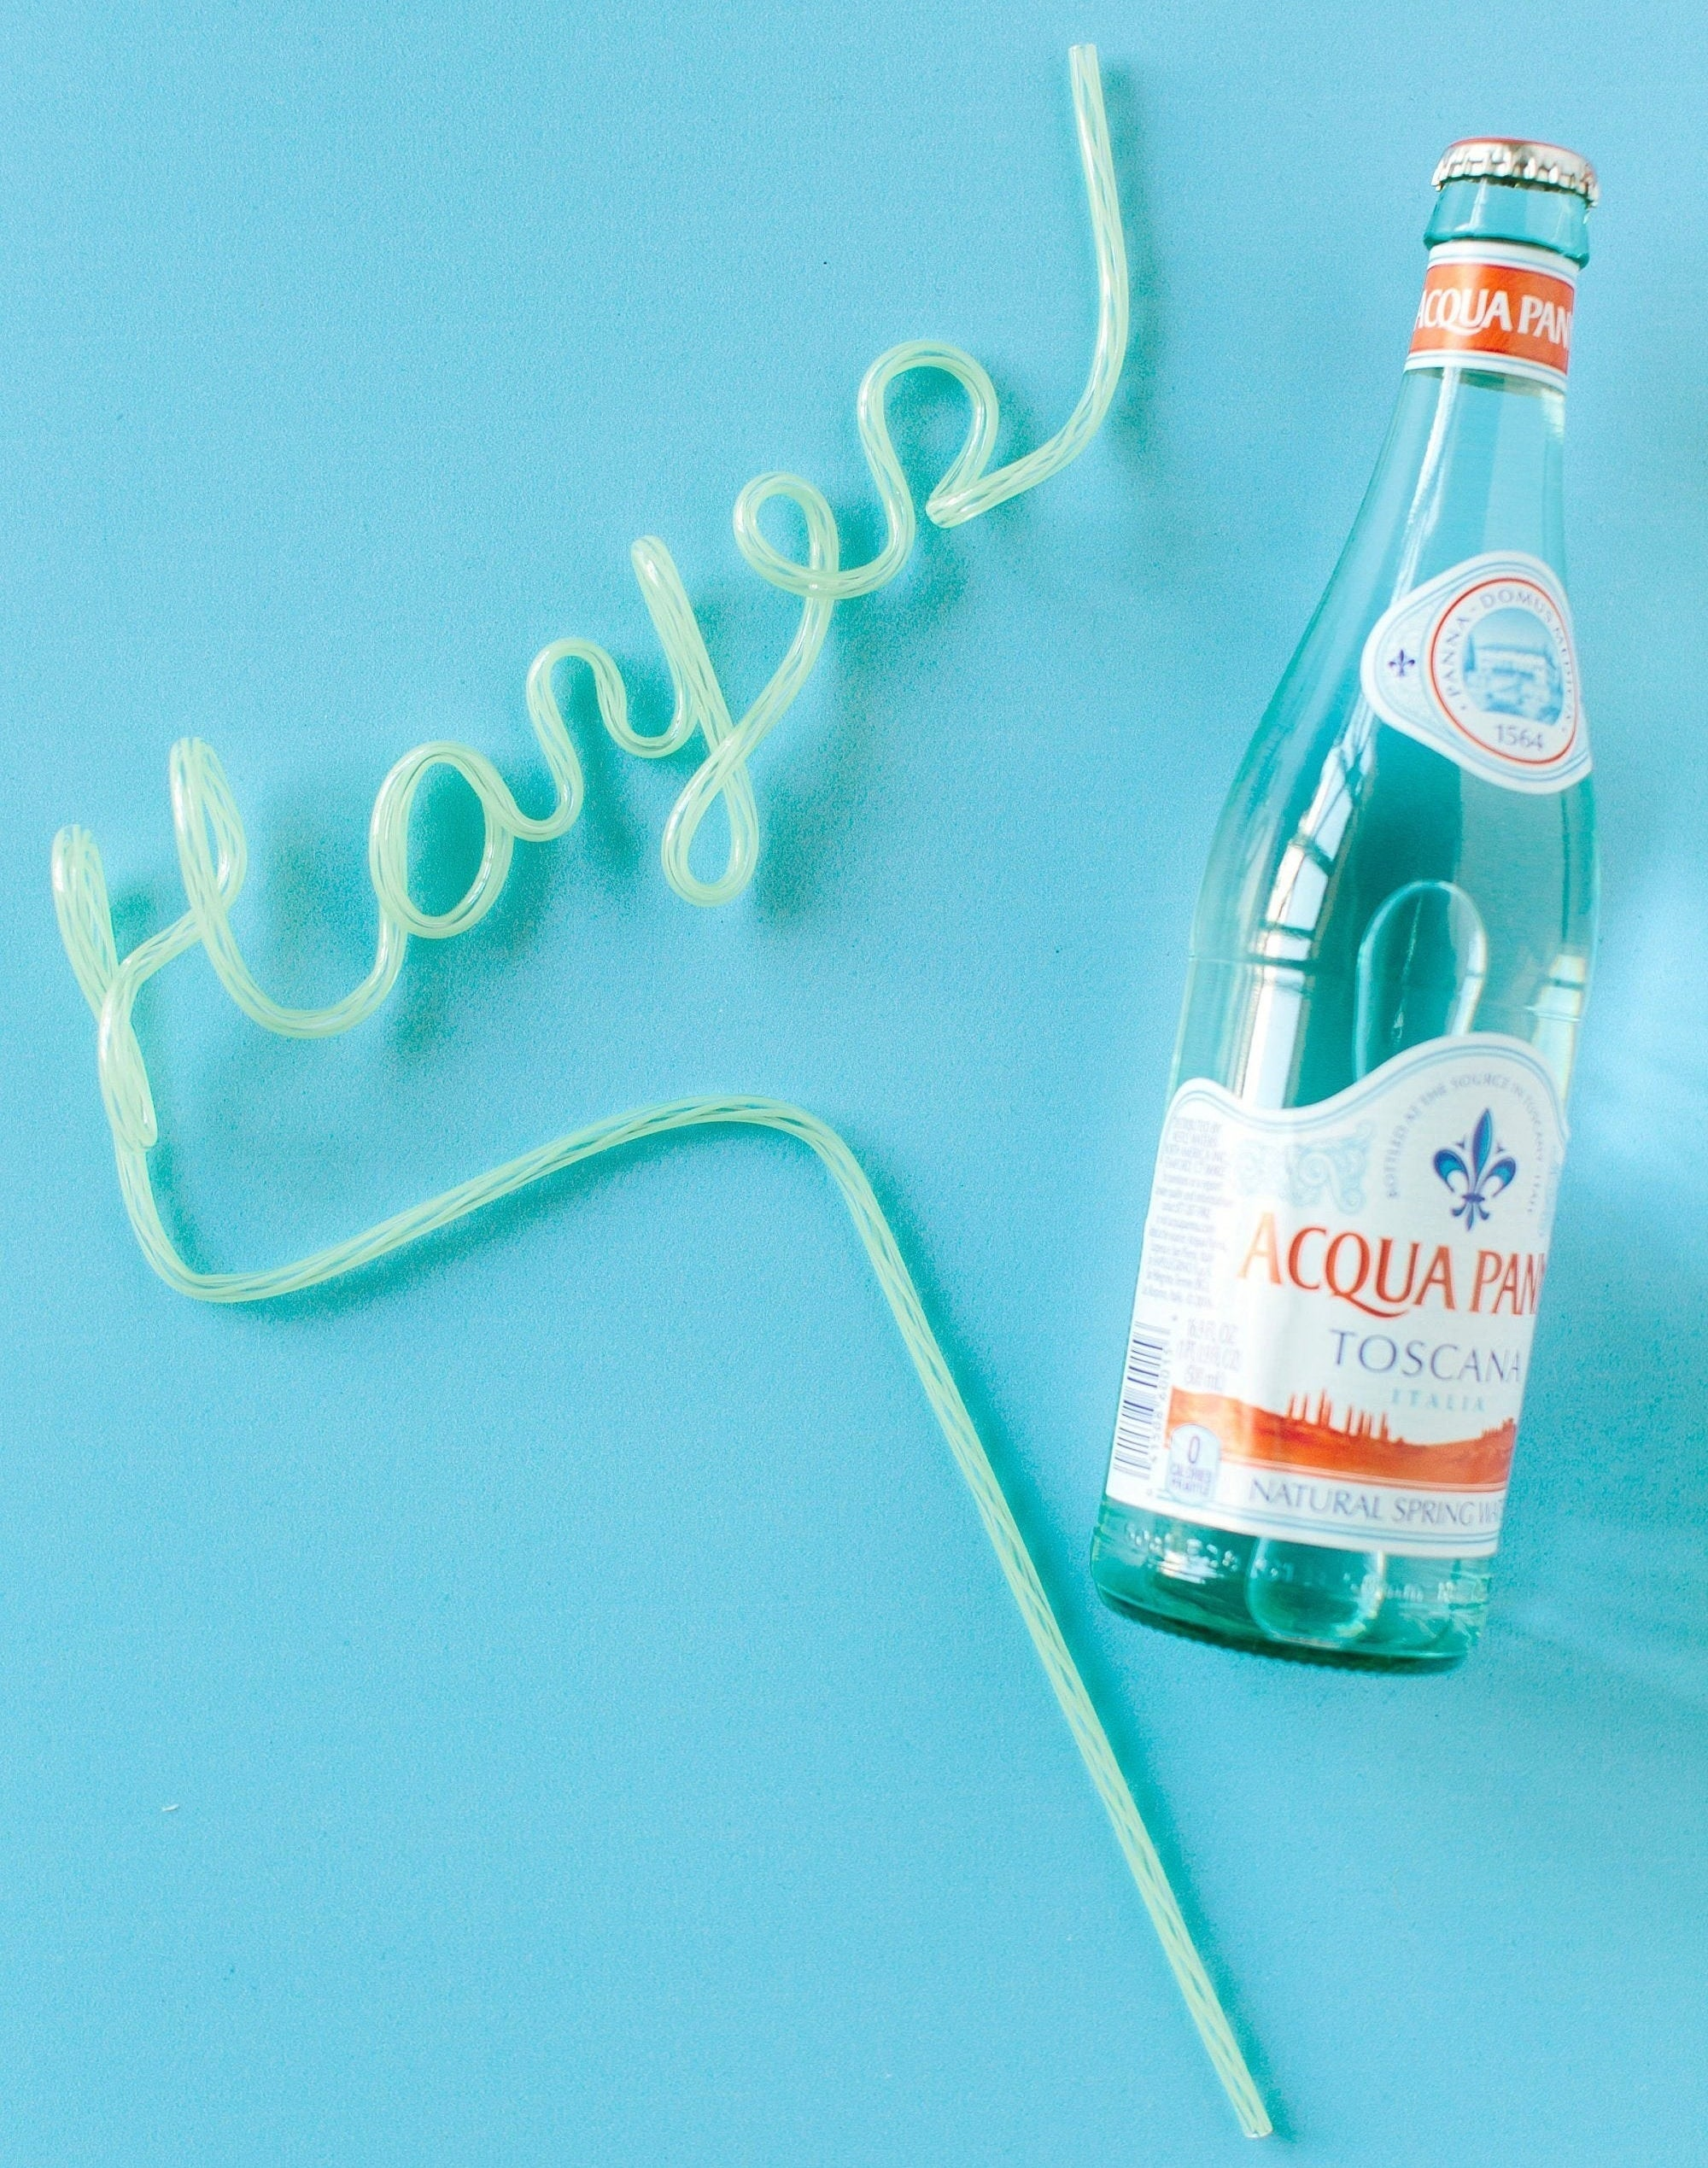 The Custom Name Straw in green